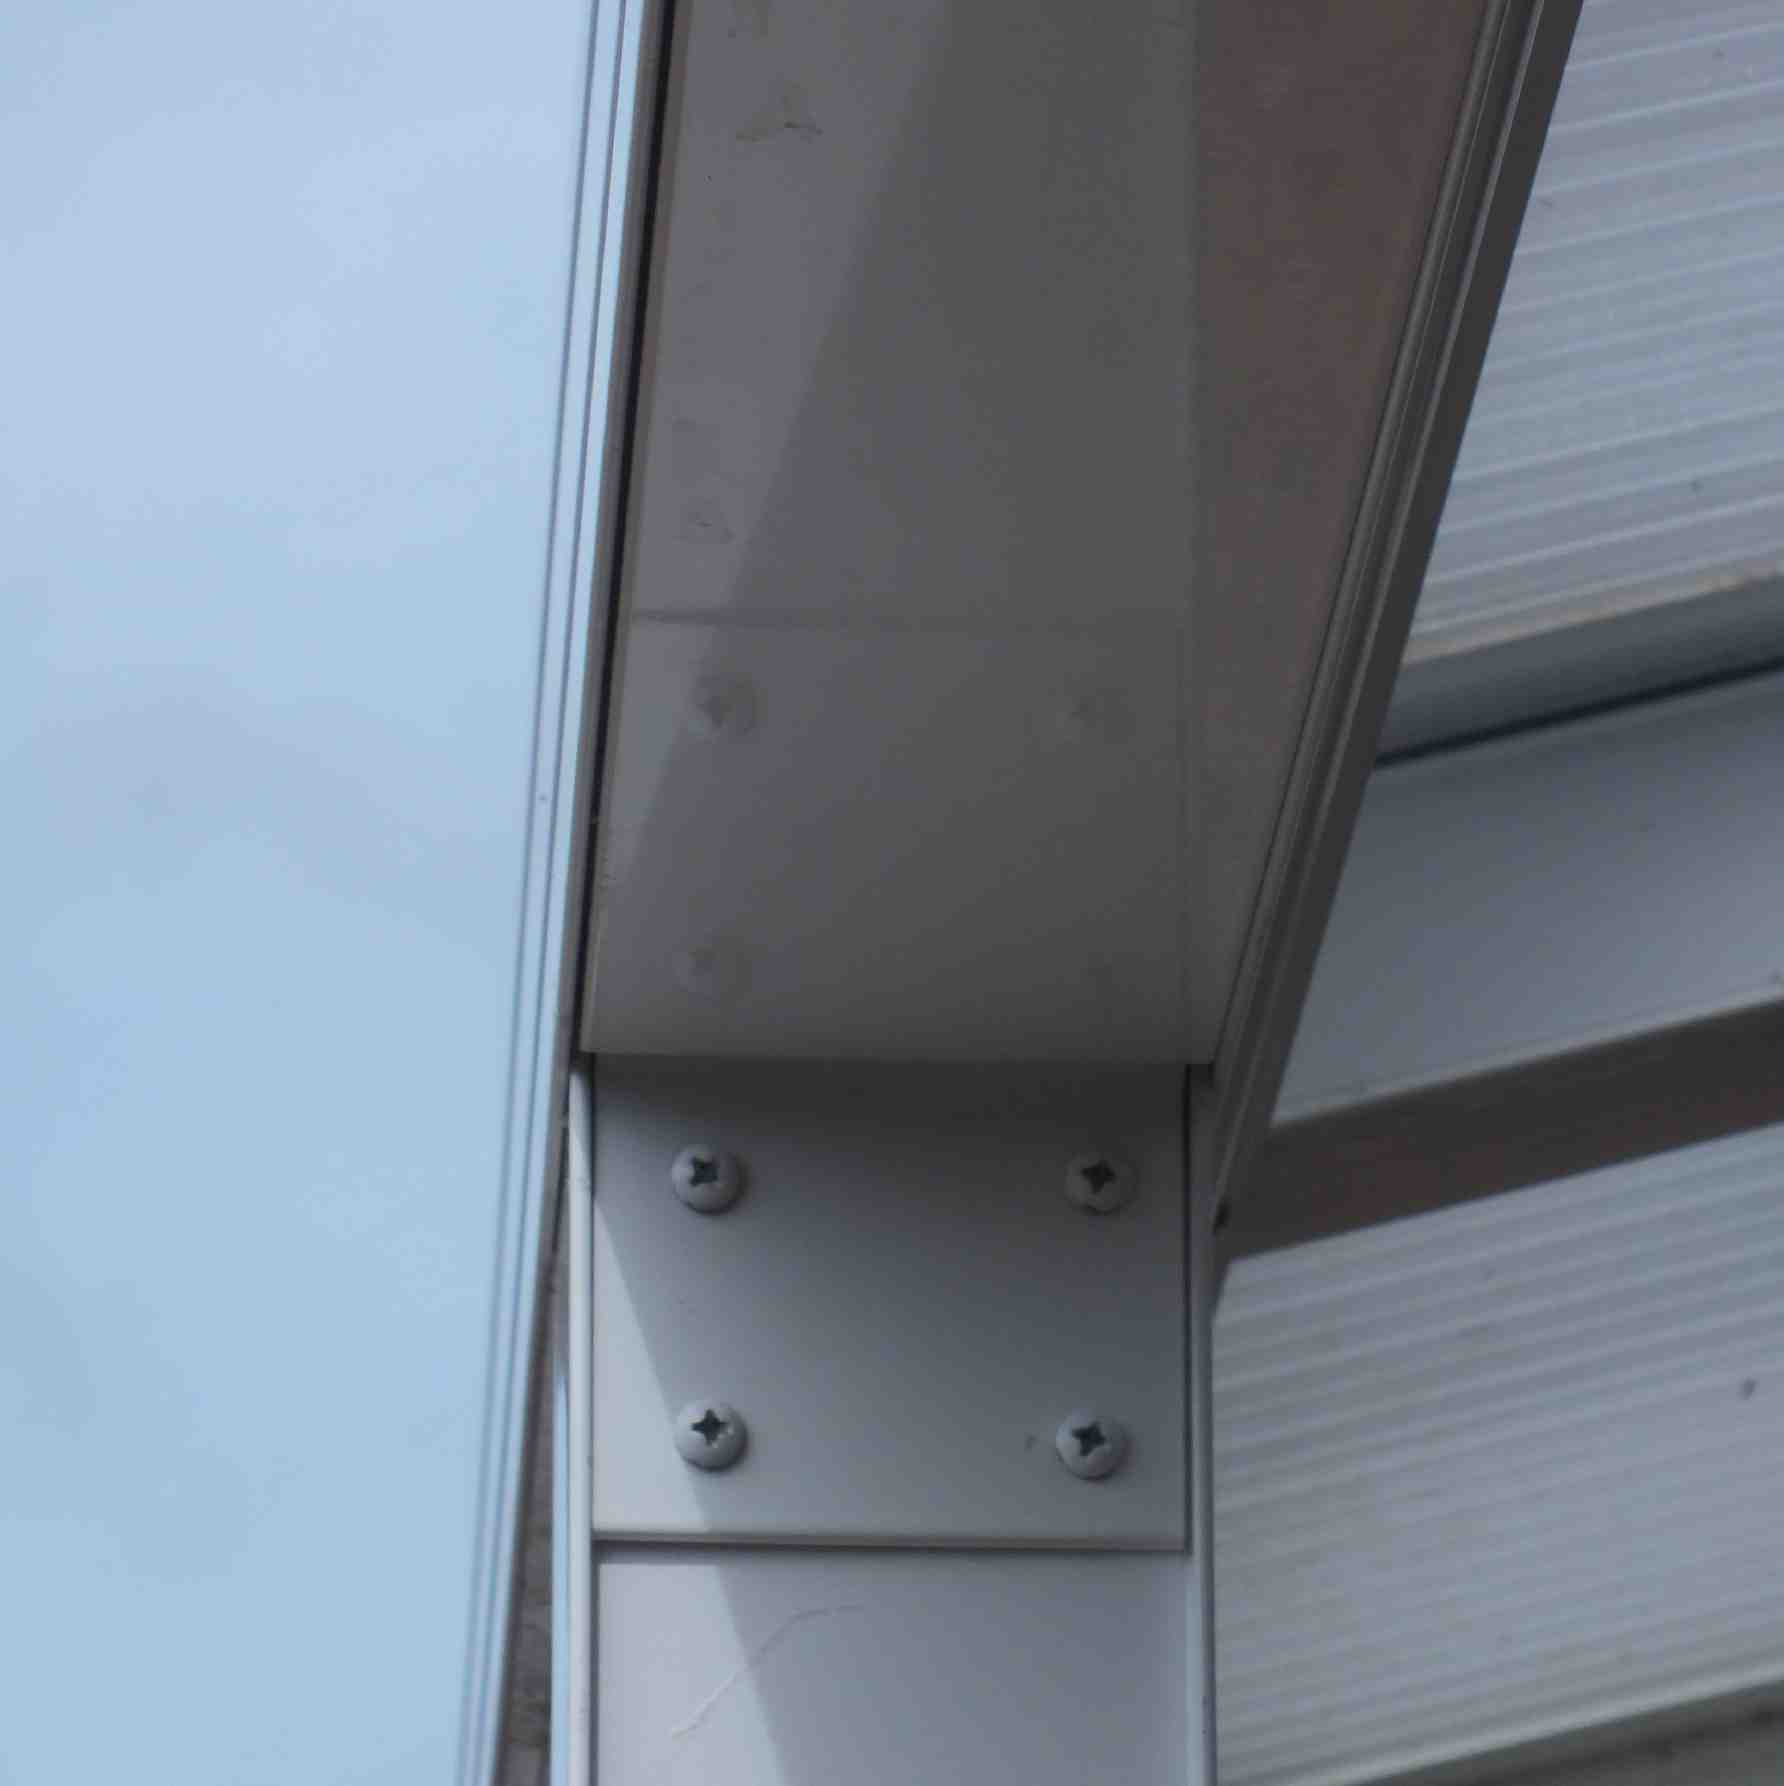 Affordable Omega Verandah with 16mm Polycarbonate Glazing - 11.6m (W) x 2.0m (P), (5) Supporting Posts